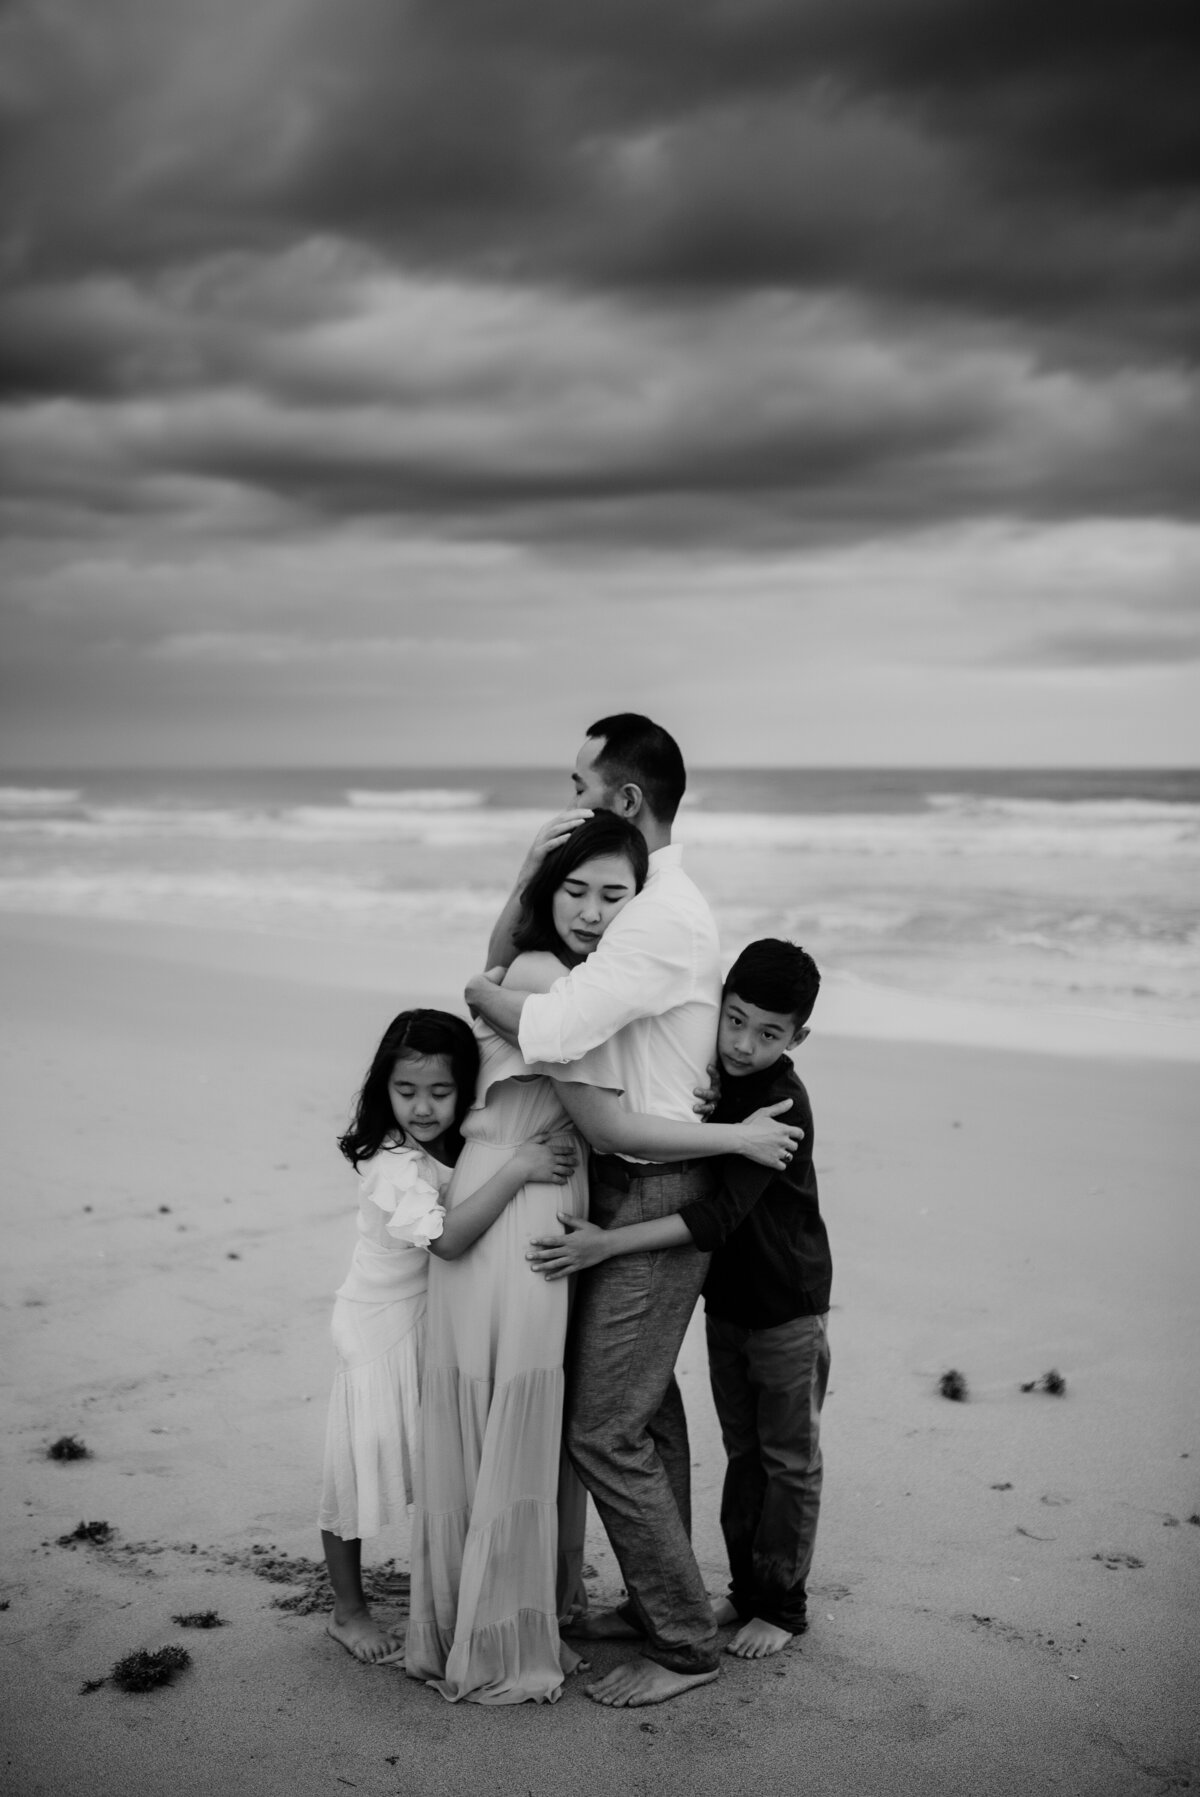 twyla_jones_photography_-_jung_family_-_florida_family_sunset_beach_session-189